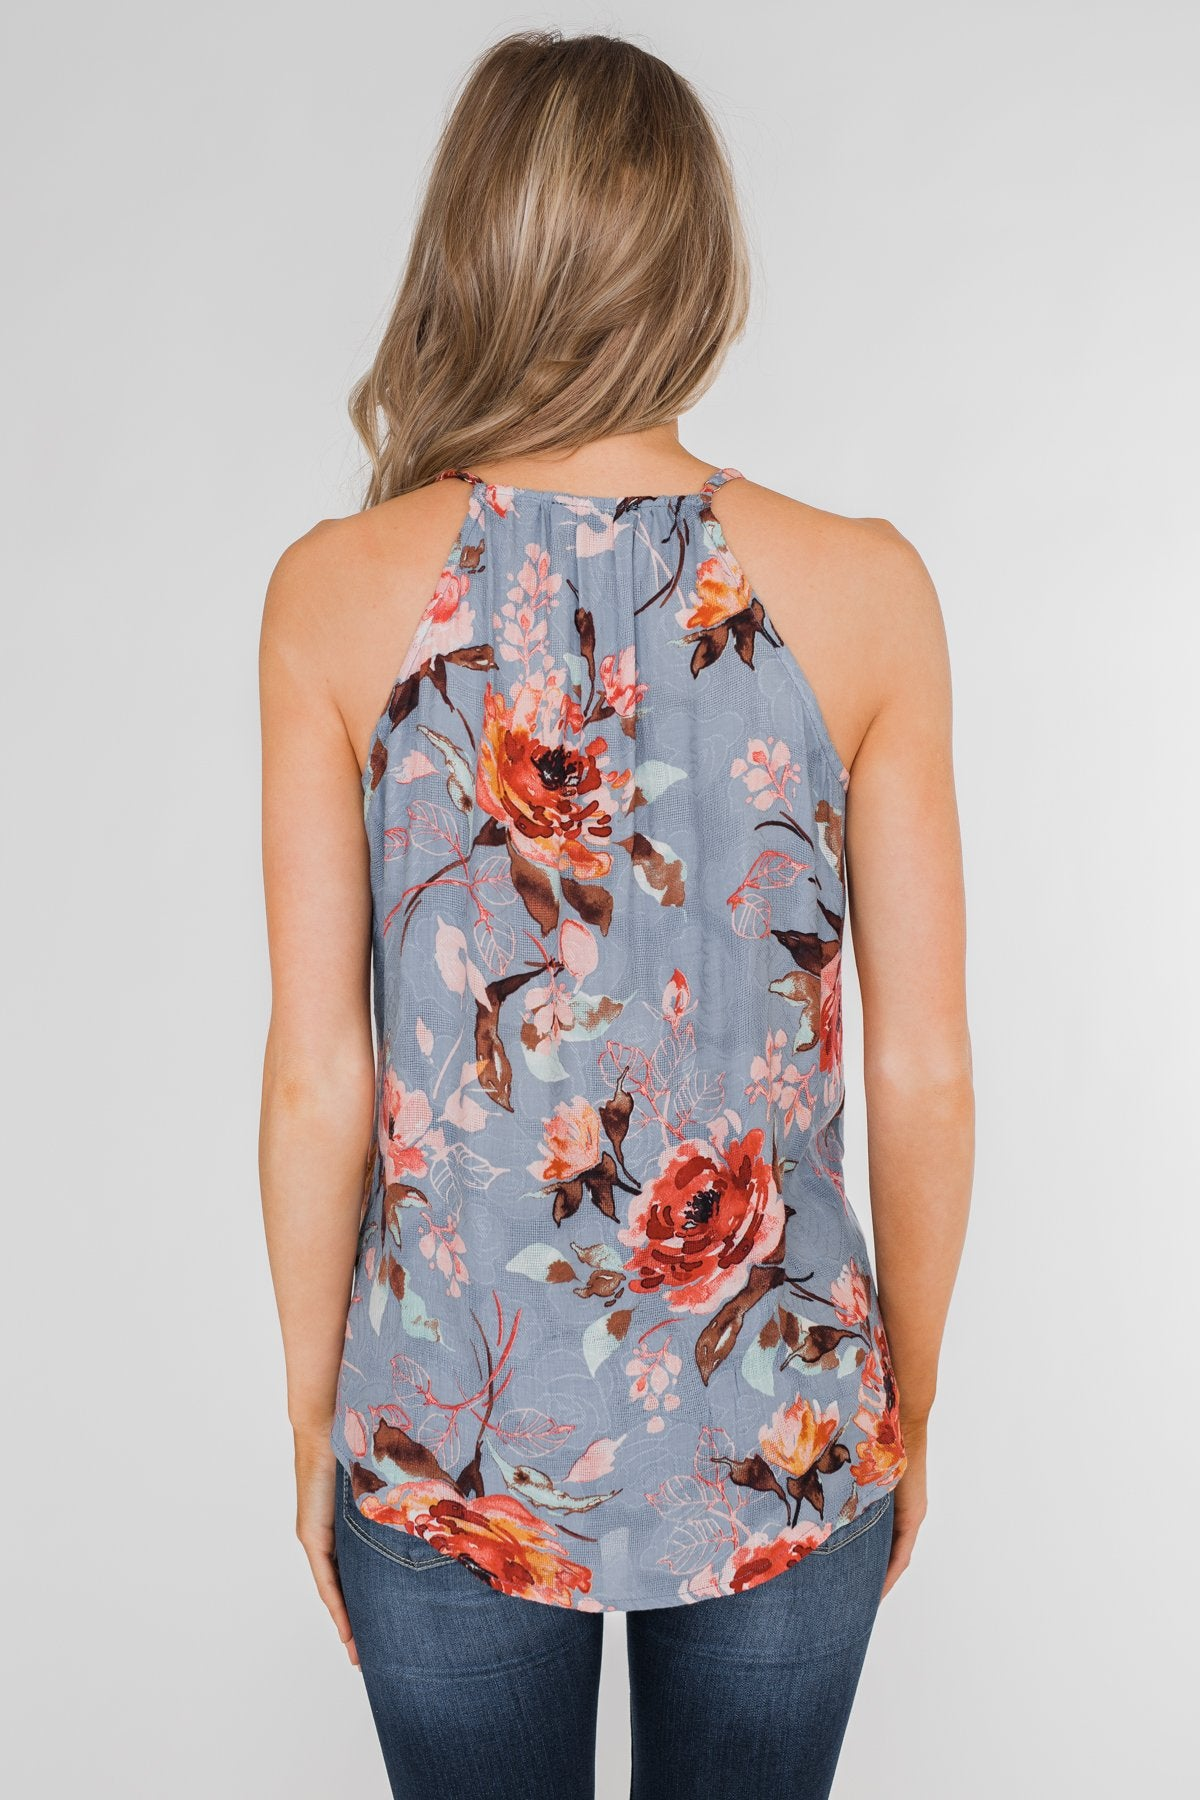 Dreaming of Floral Ruffle Tank Top - Light Steel Blue